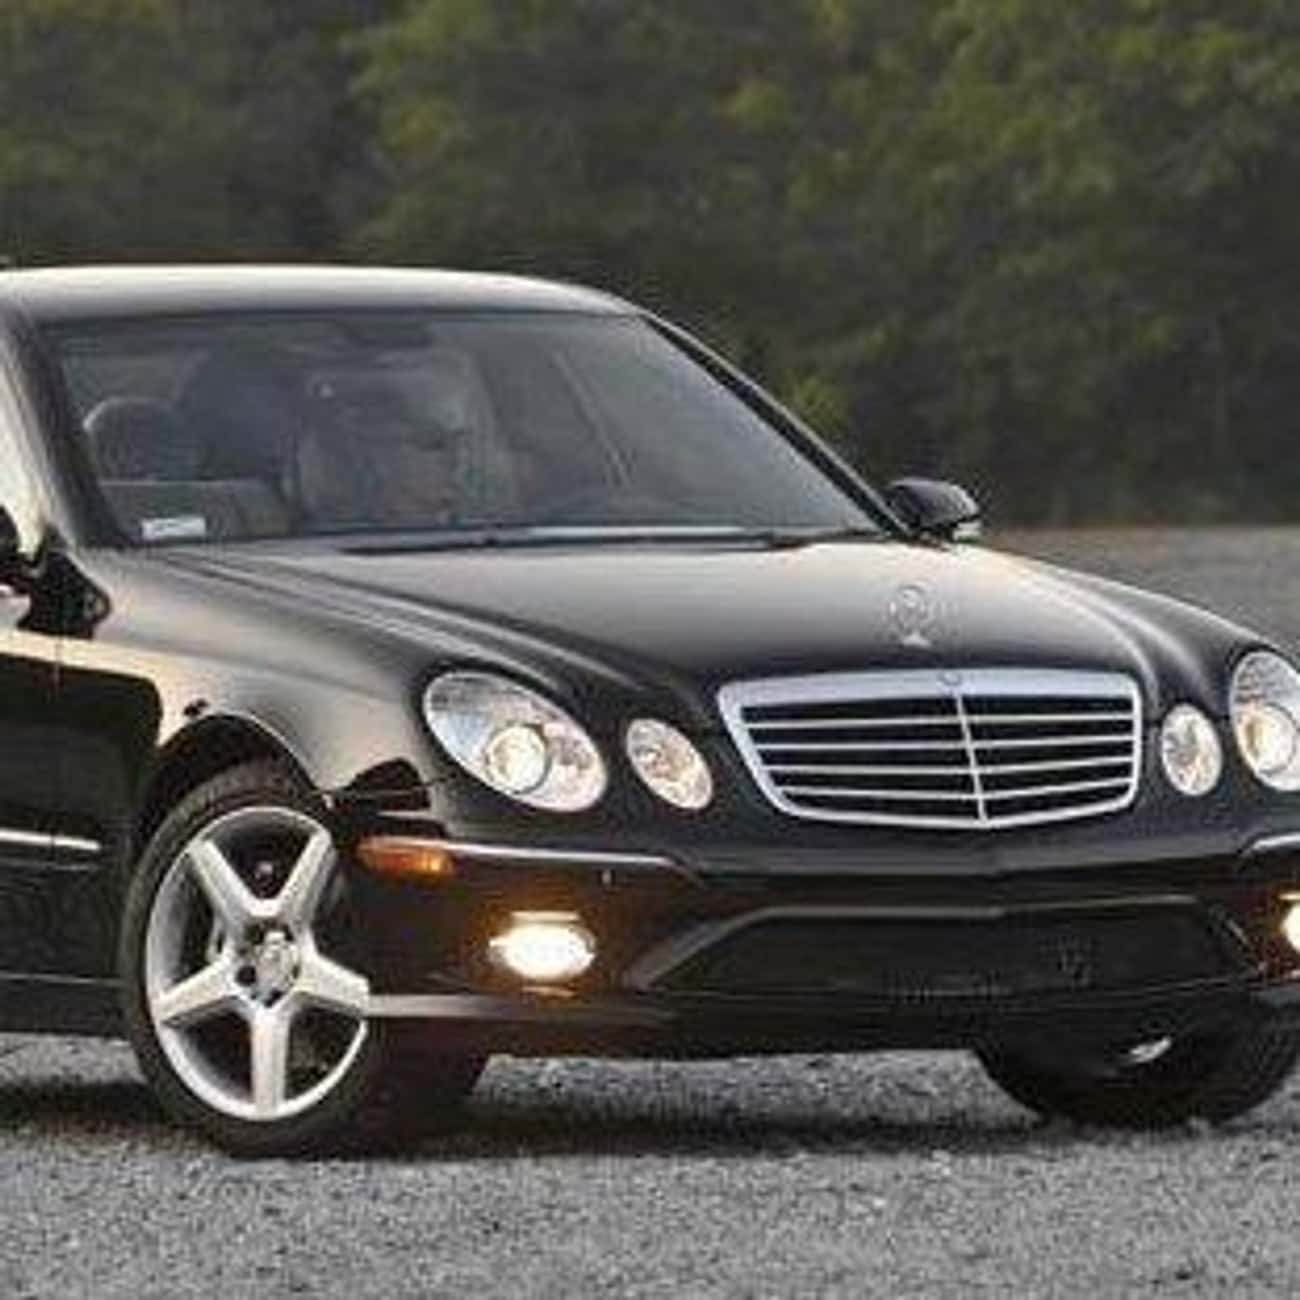 2009 Mercedes-Benz E-Class Sed is listed (or ranked) 2 on the list The Best Mercedes-Benz E-Classes of All Time